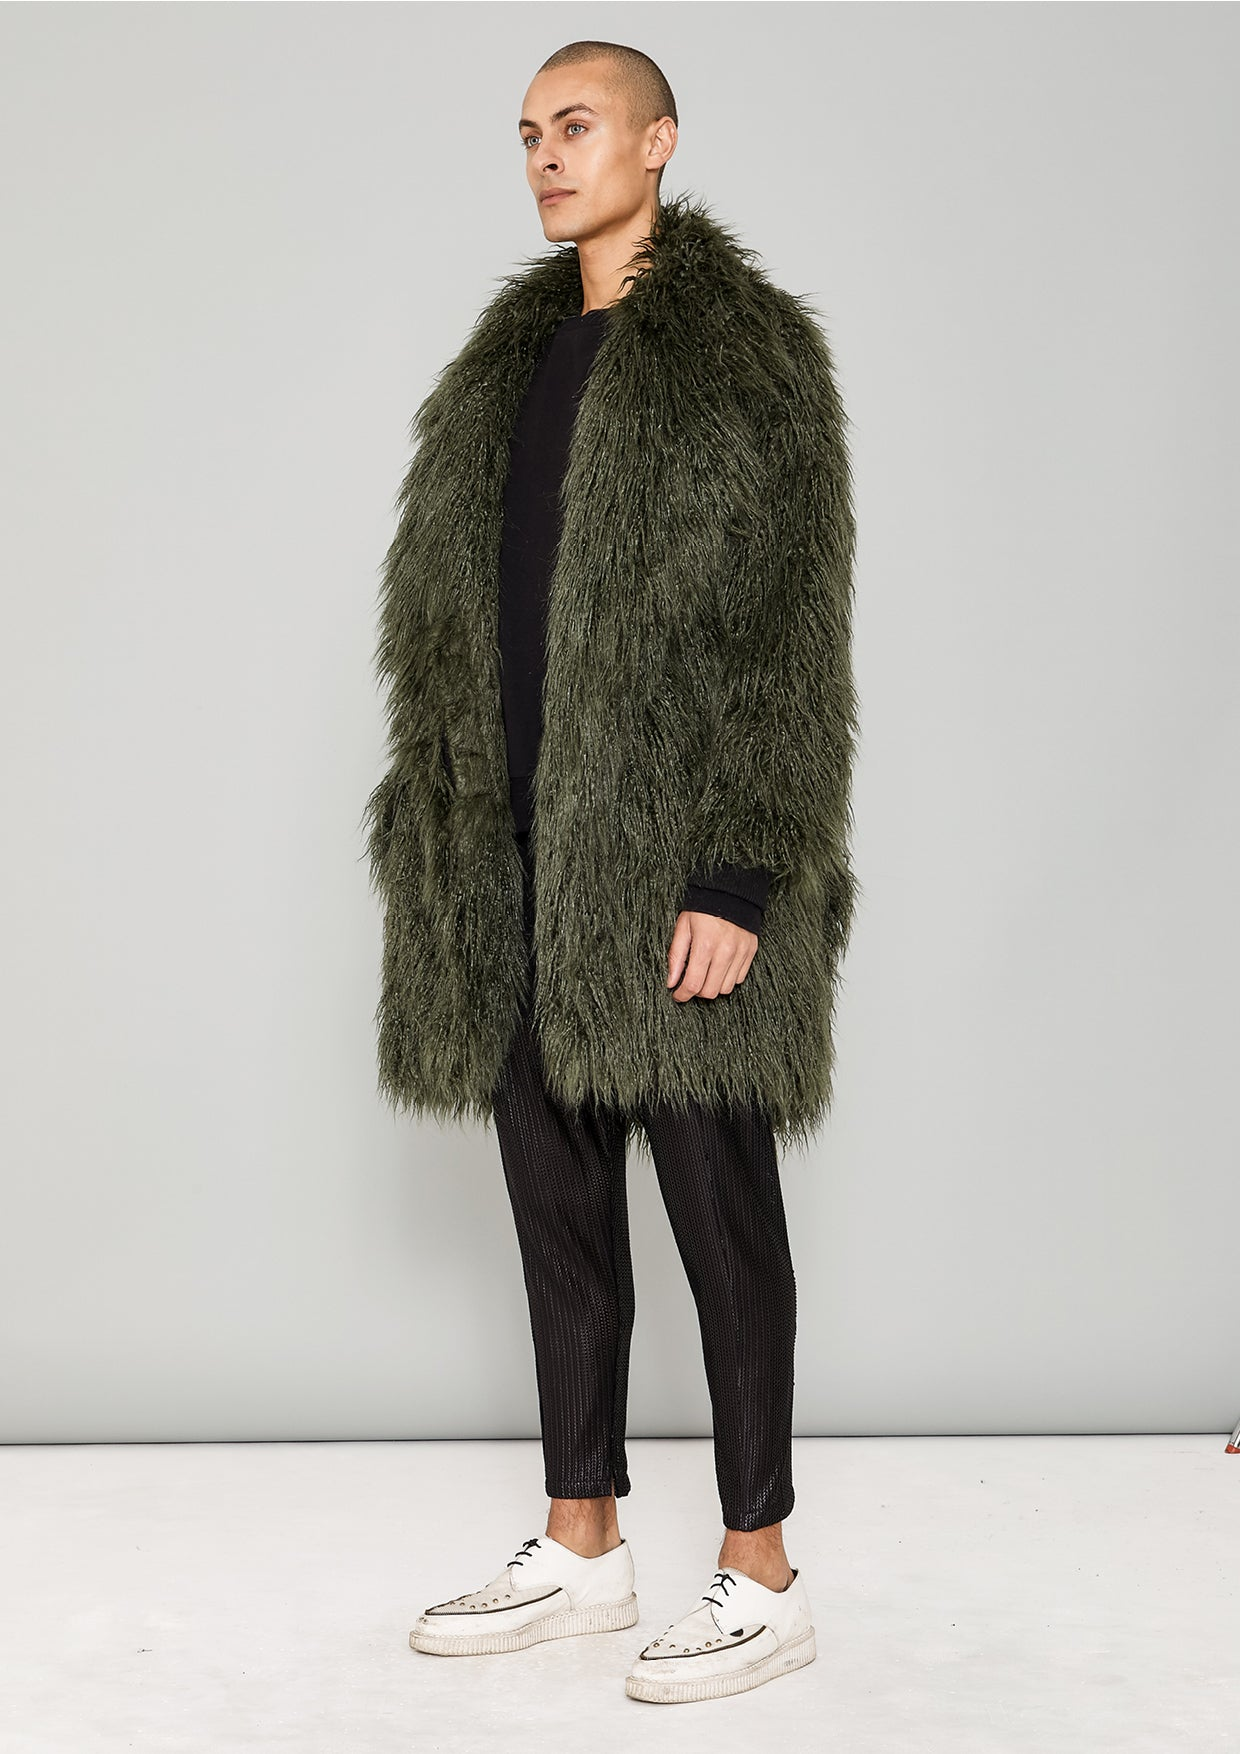 969f57bd1d COAT FUR LINING - FAUX FUR SHAGGY dark green